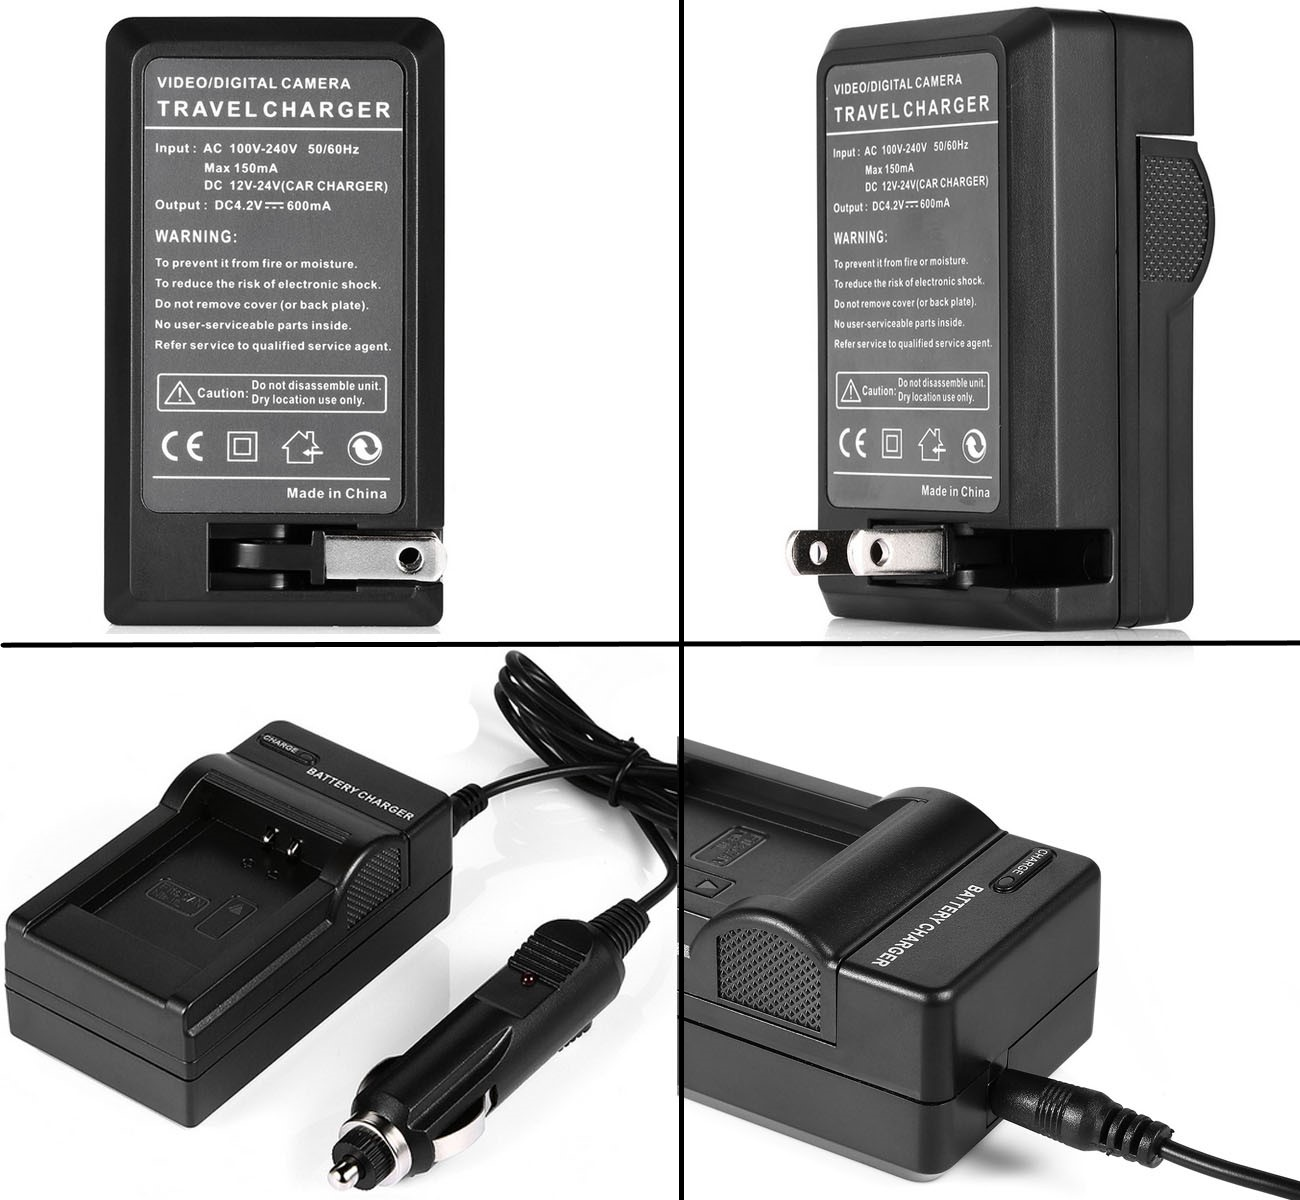 Battery Charger for Panasonic NV-GS60 NV-GS75 NV-GS78 NV-GS80 NV-GS85 Camcorder